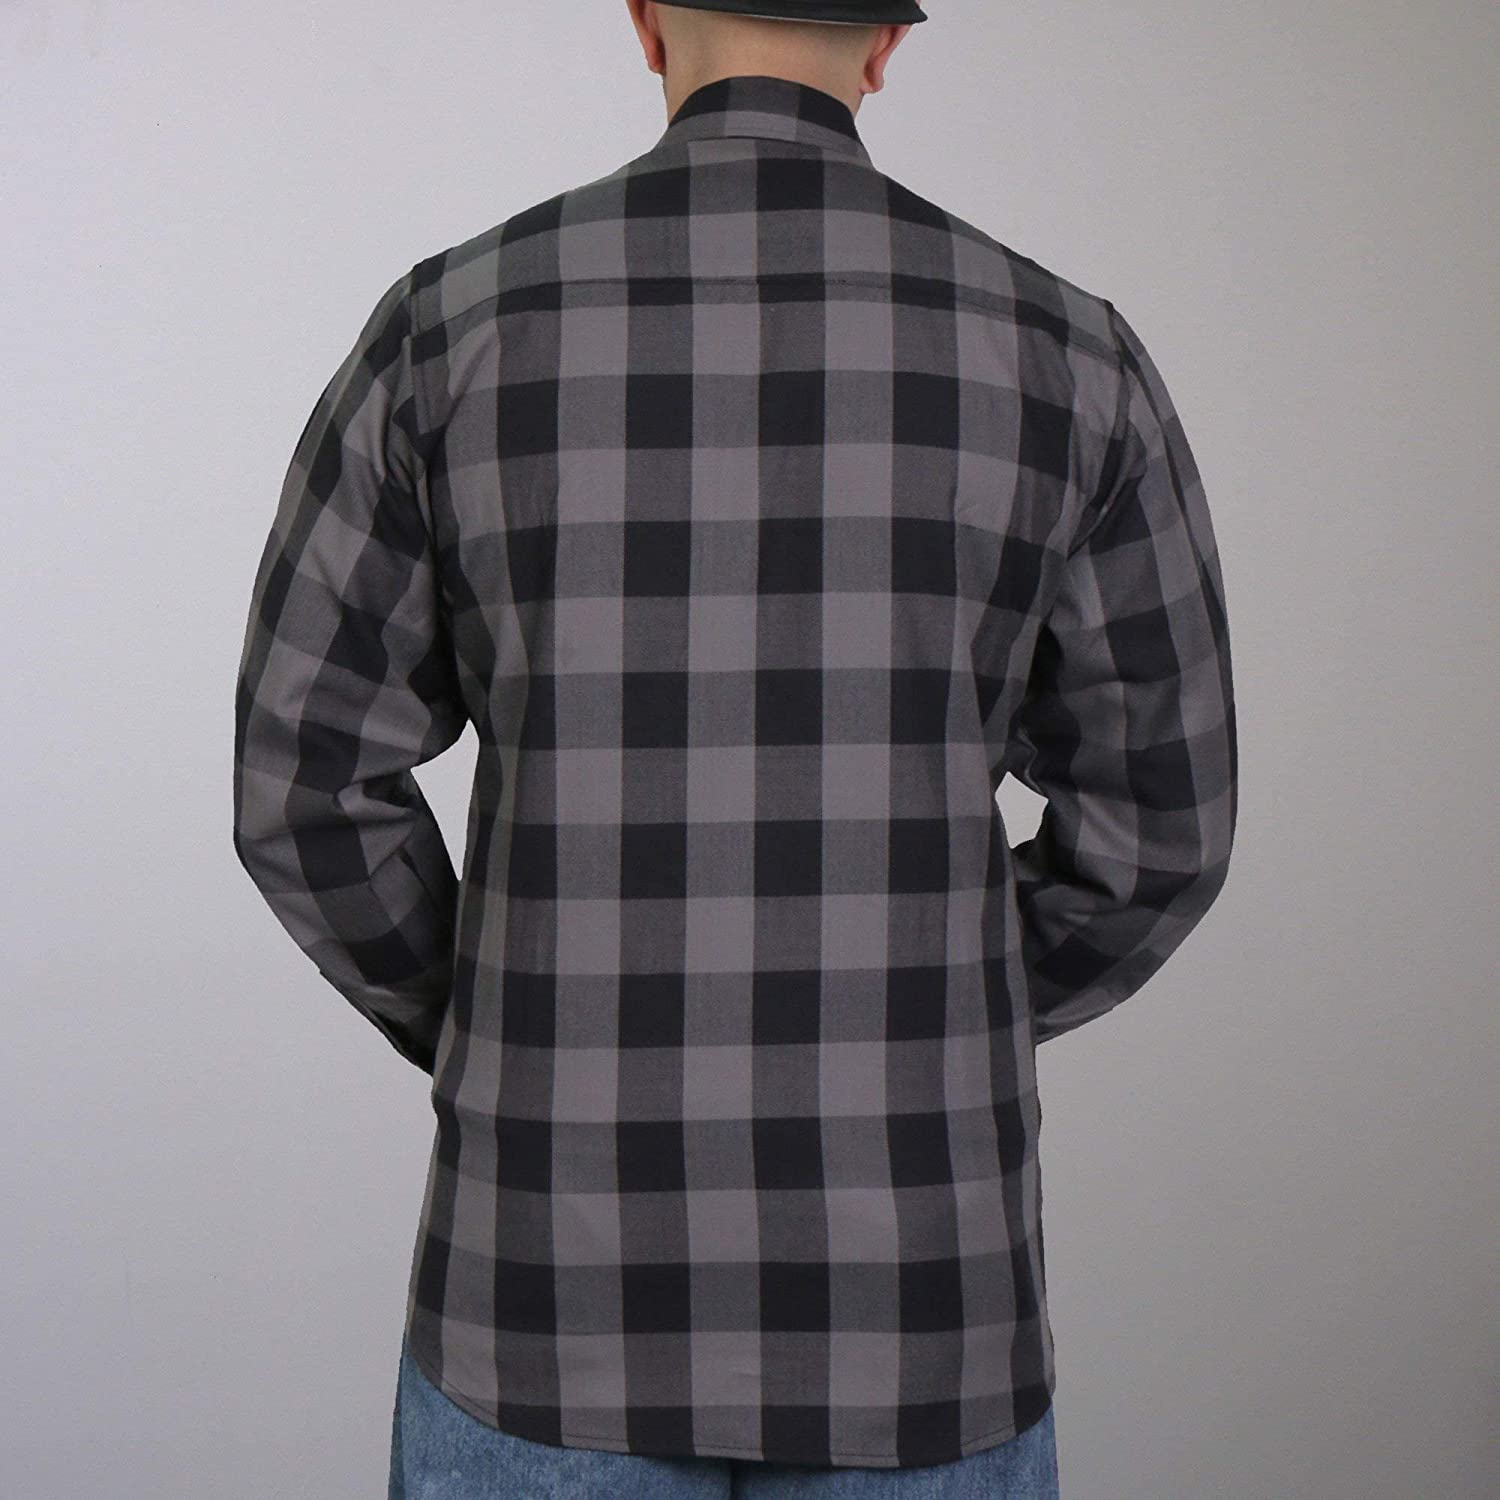 Hot Leathers FLM2001 Mens Black and Gray Long Sleeve Flannel Shirt